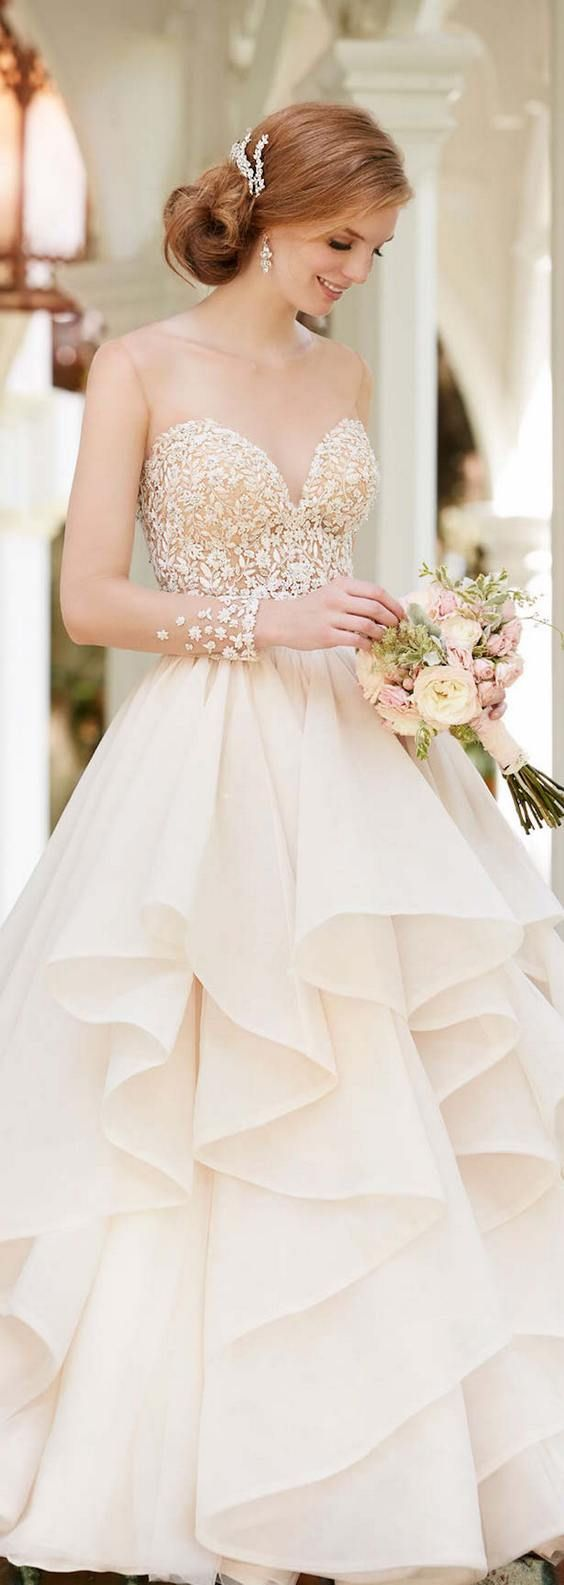 the dress collection ruffle wedding dress 40 Sweetheart Wedding Dresses That Will Take Your Breath Away